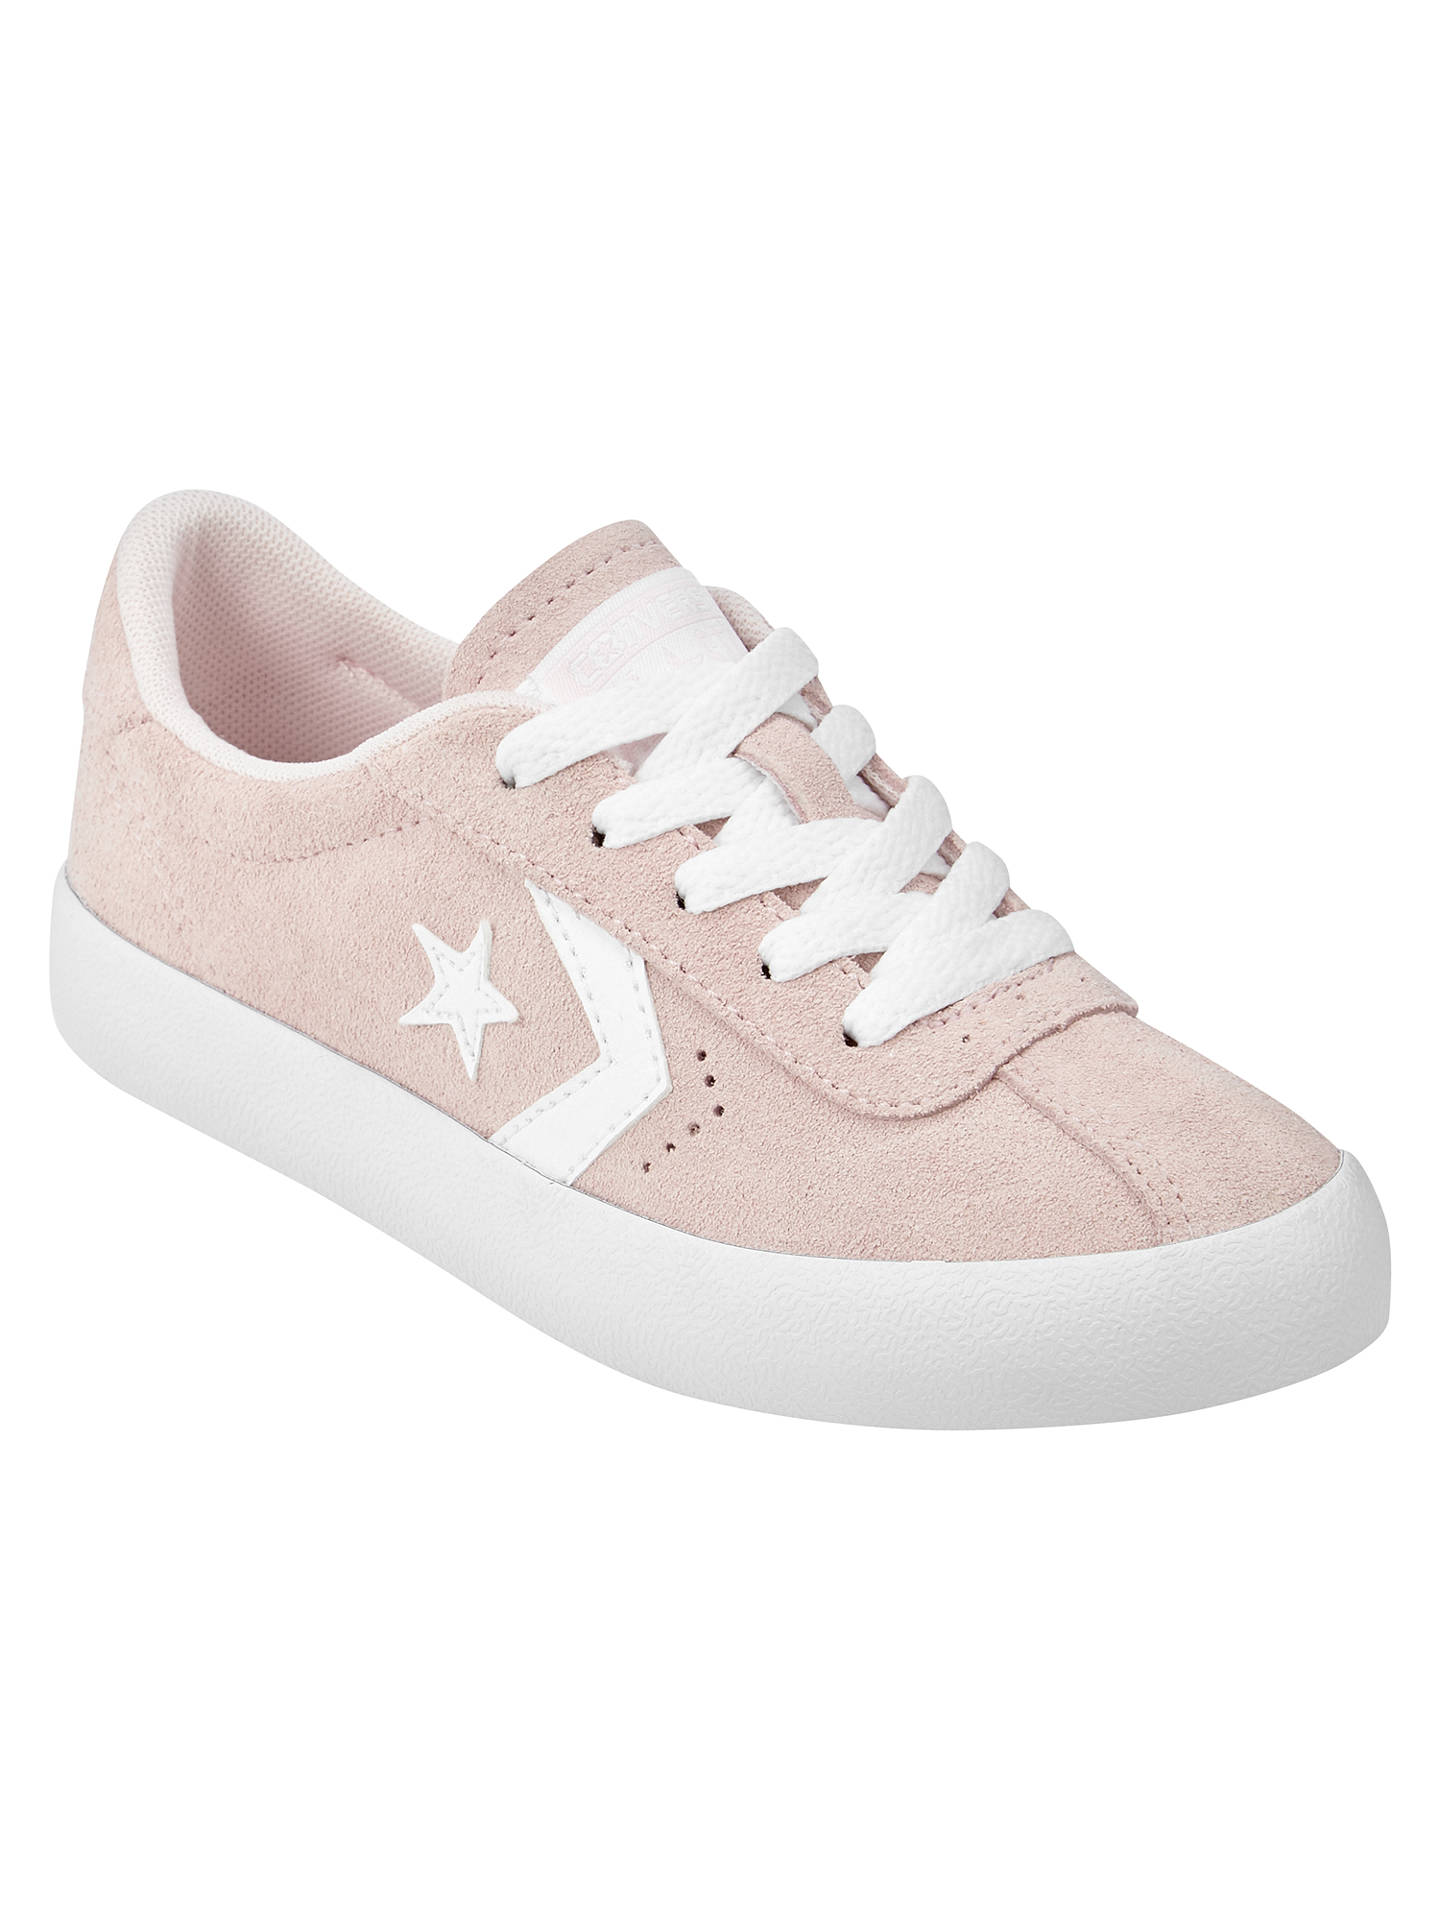 775ef873a259 Buy Converse Breakpoint Trainers, Pink Suede, 1 Online at johnlewis.com ...